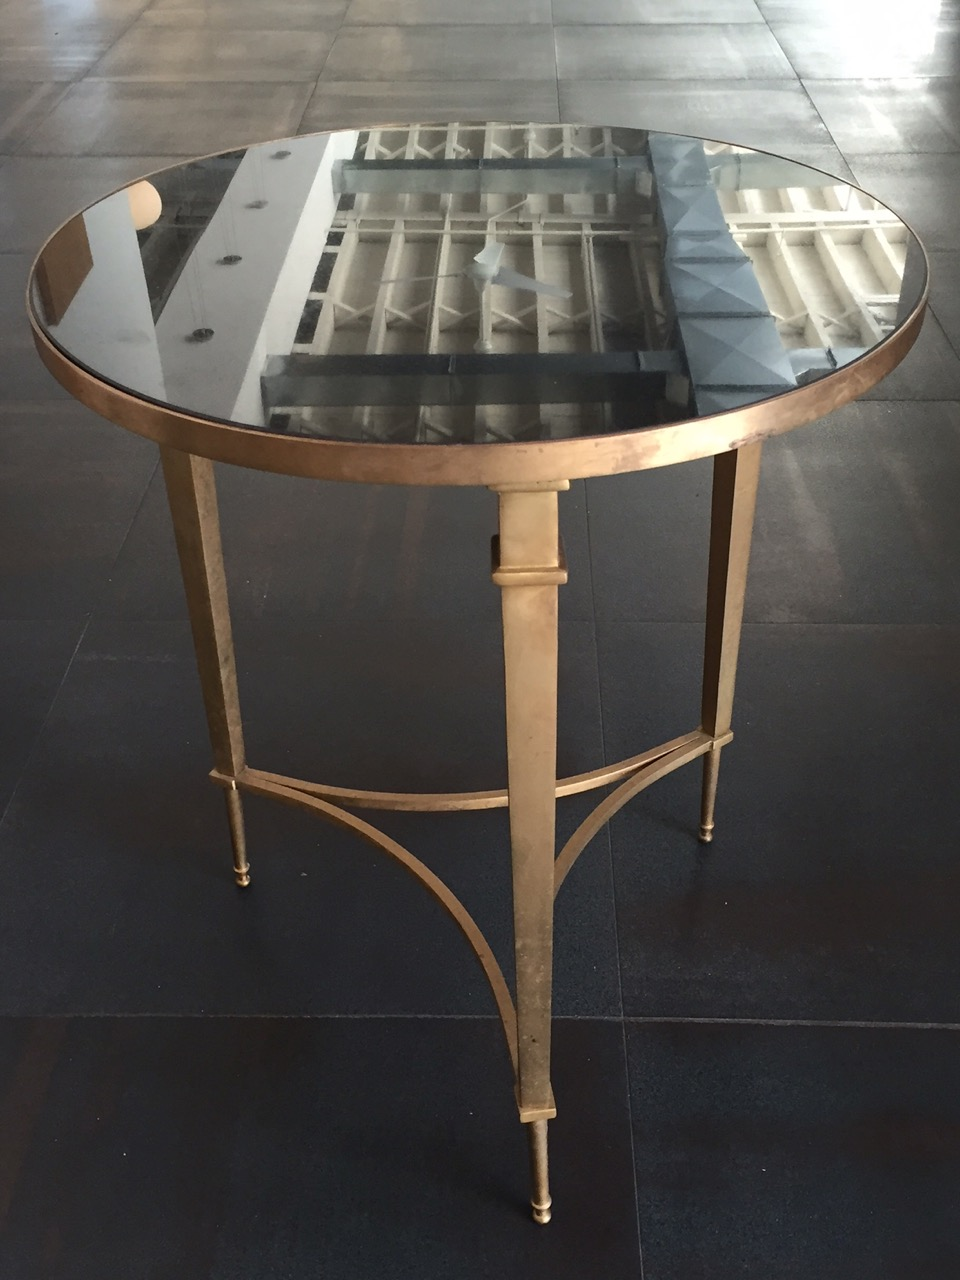 RSS Brass and Granite End Table $320